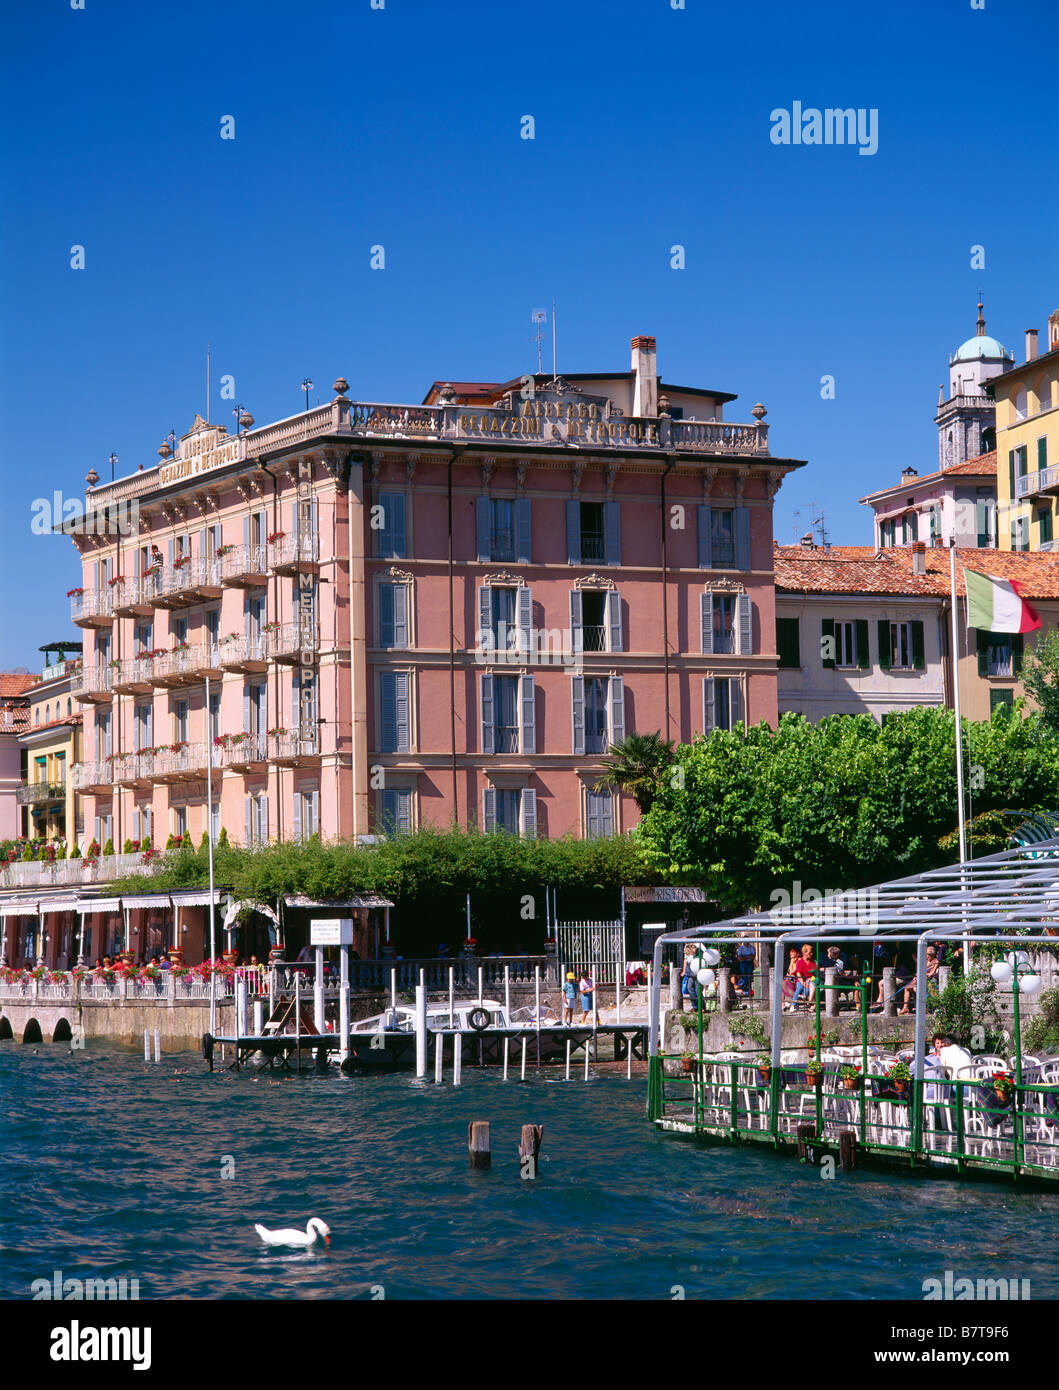 The Hotel Metropole, Bellagio, Lombardy, Italy. - Stock Image